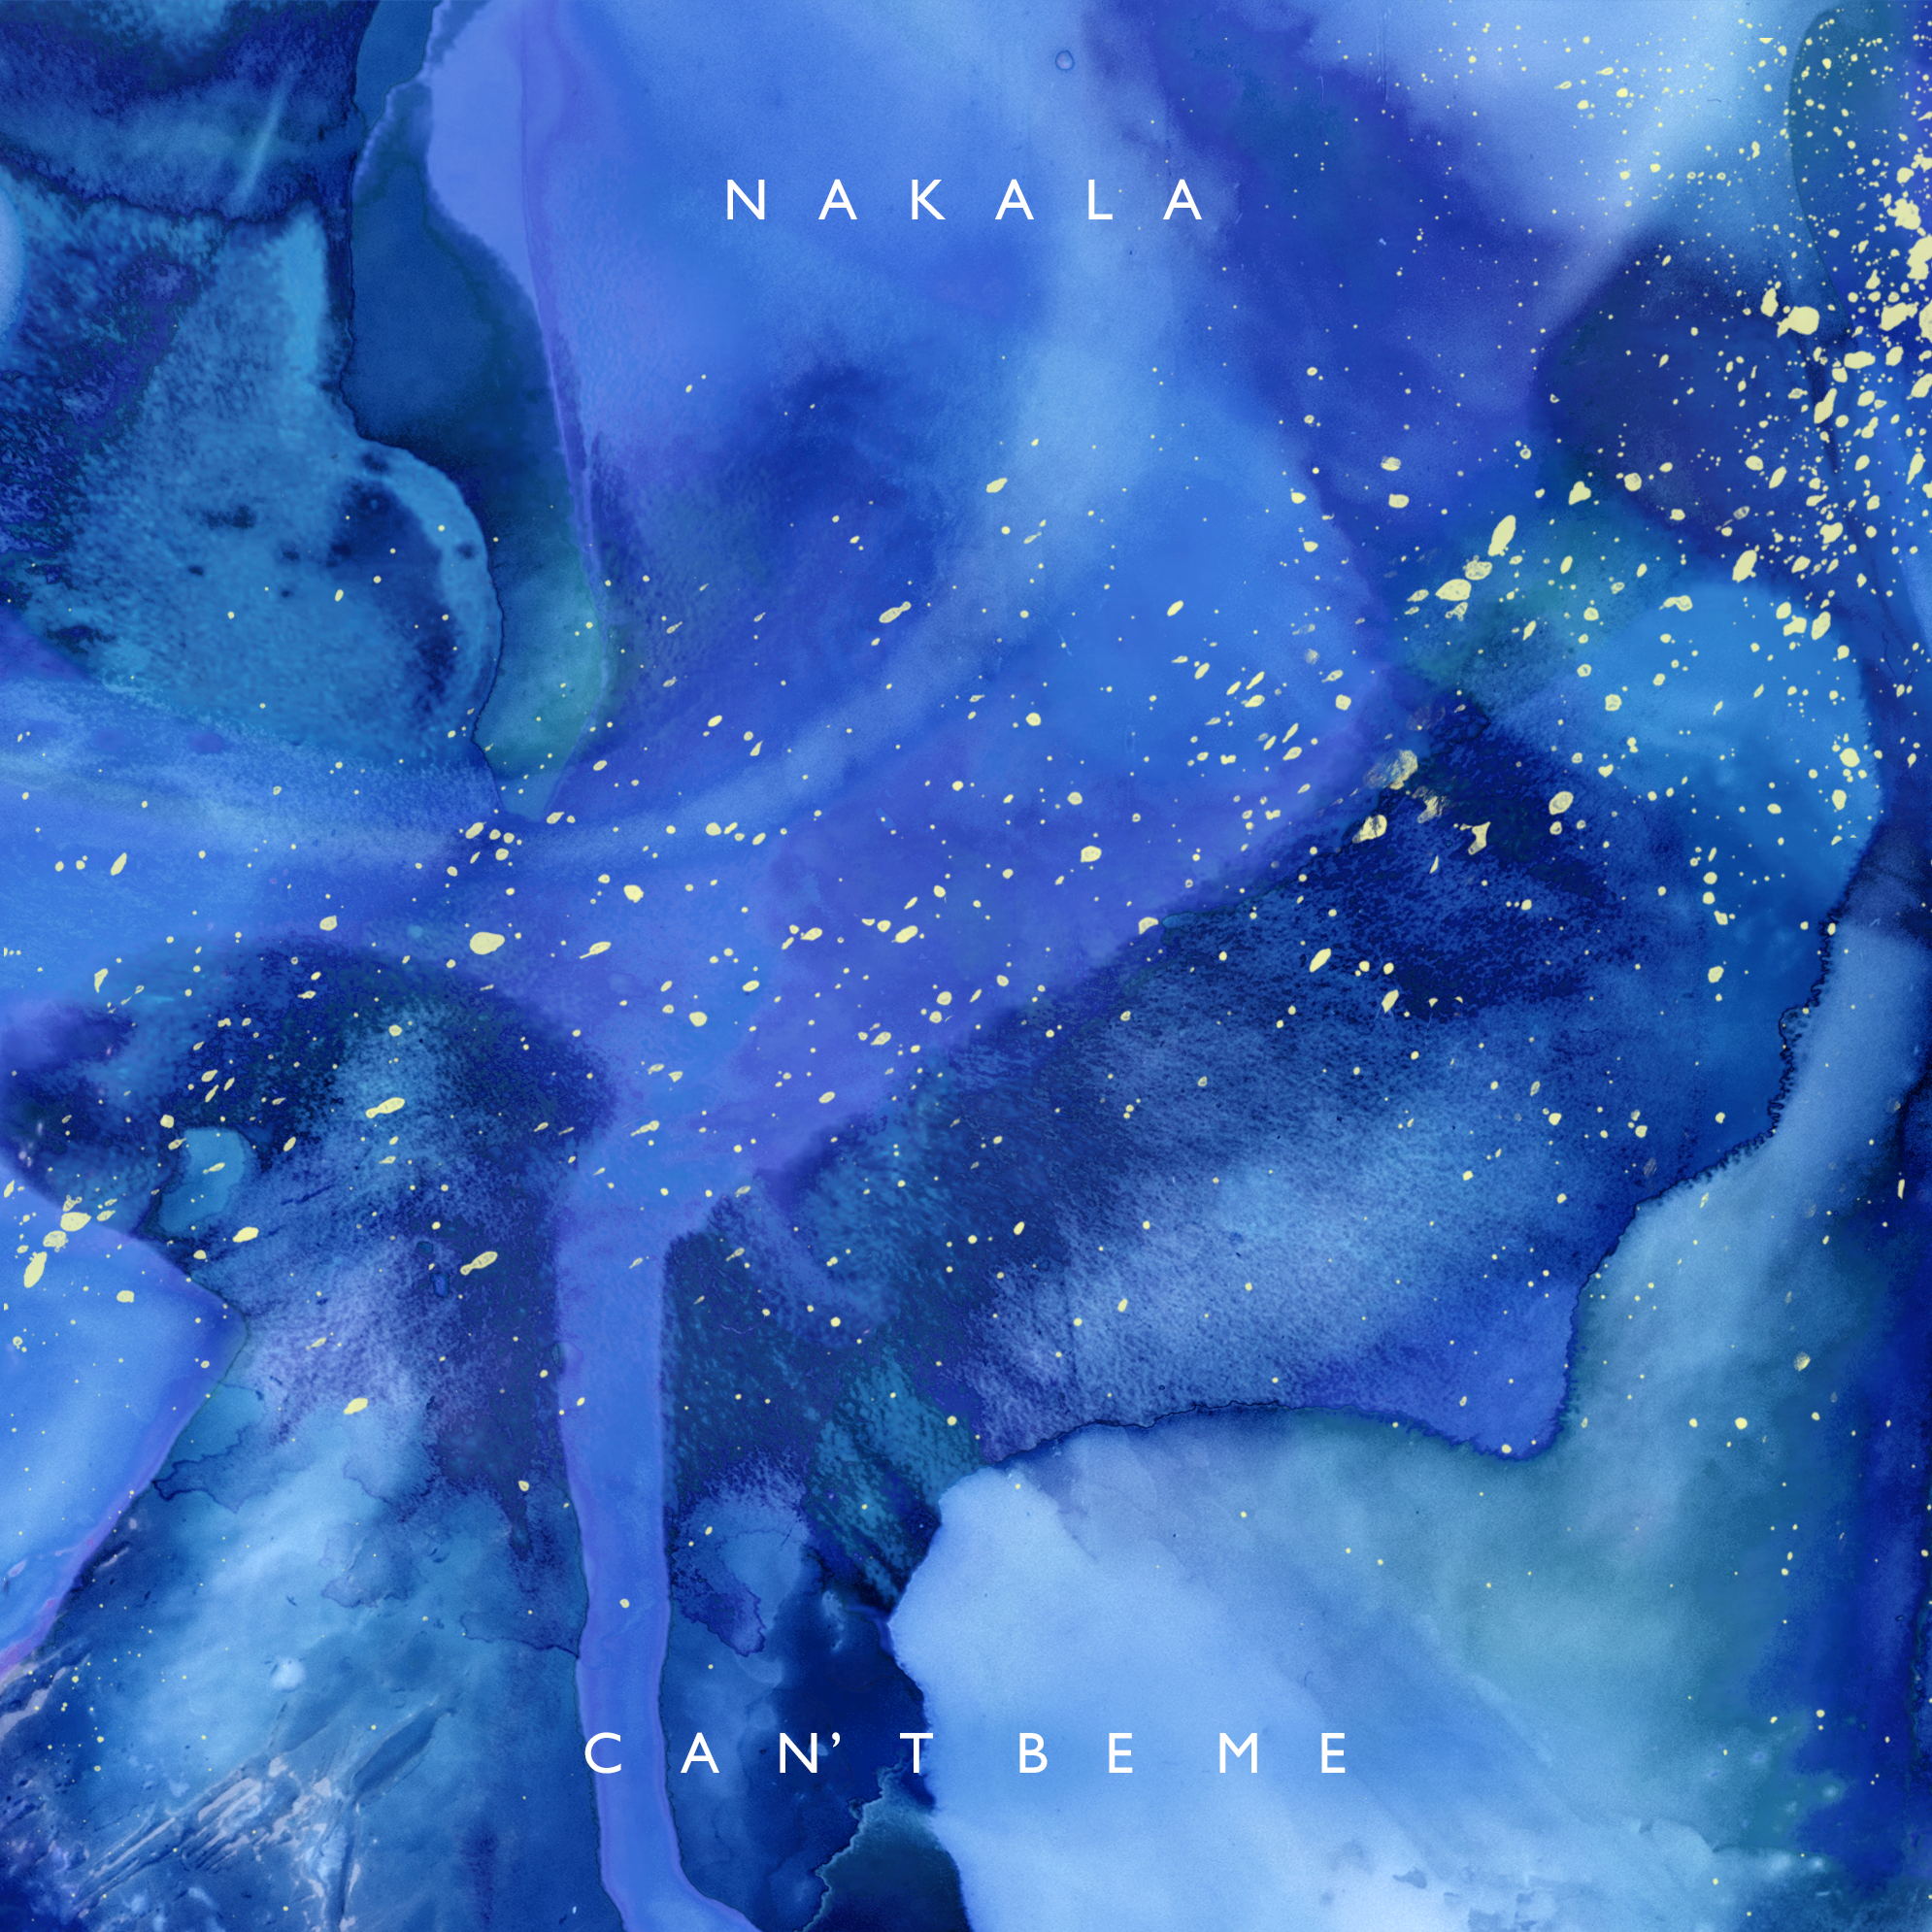 nakala can'tbeme artwork sample.png